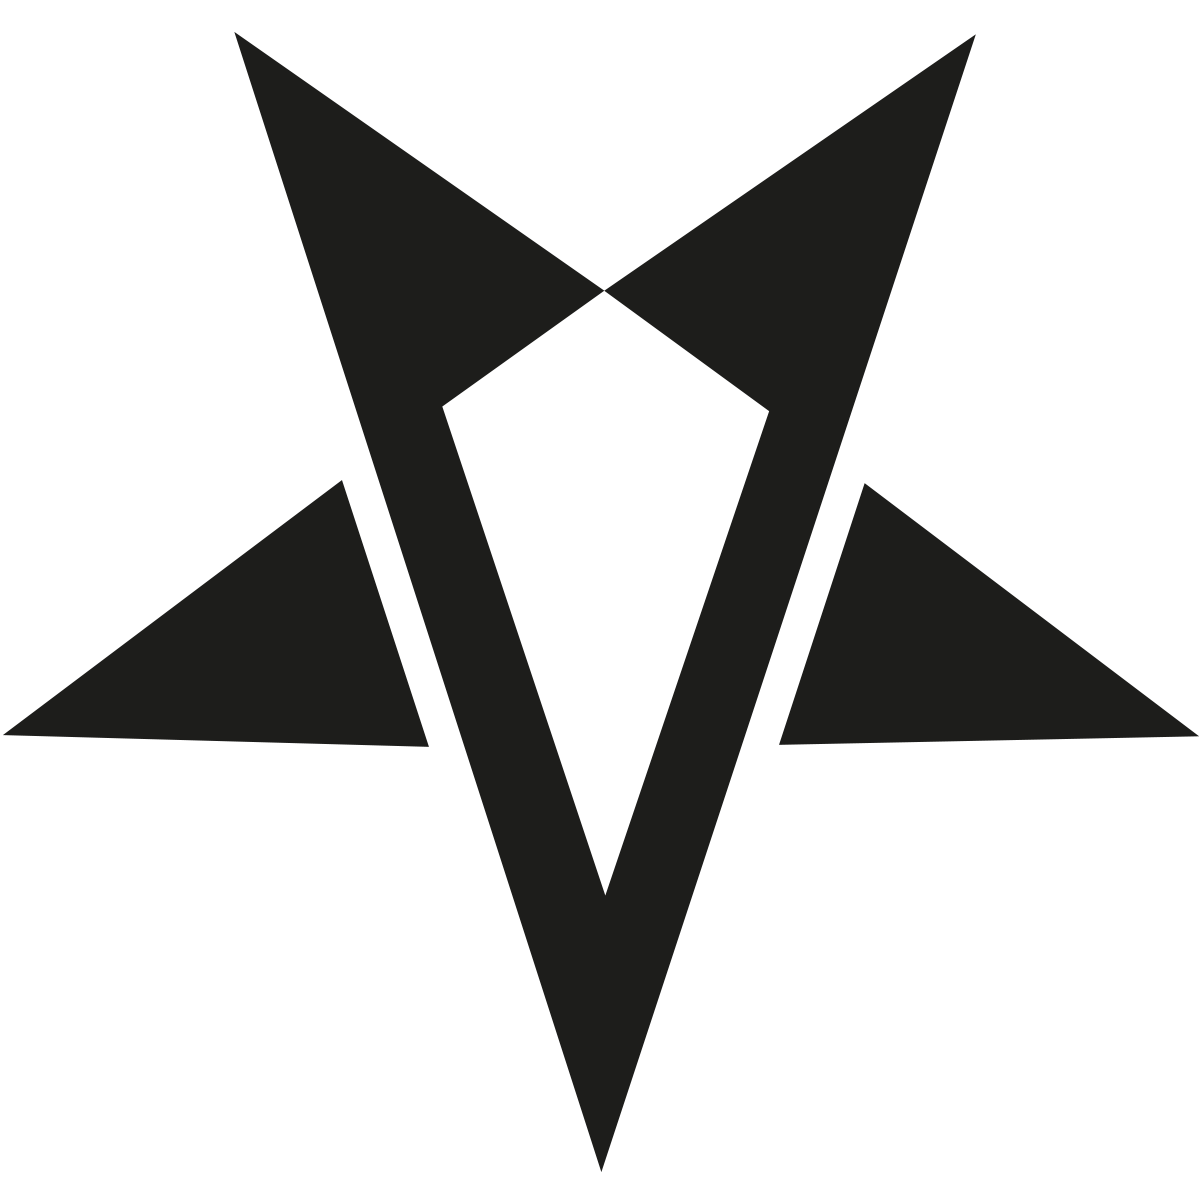 VEX Star Logo u2013 Hi Res and Transparent - Vex PNG